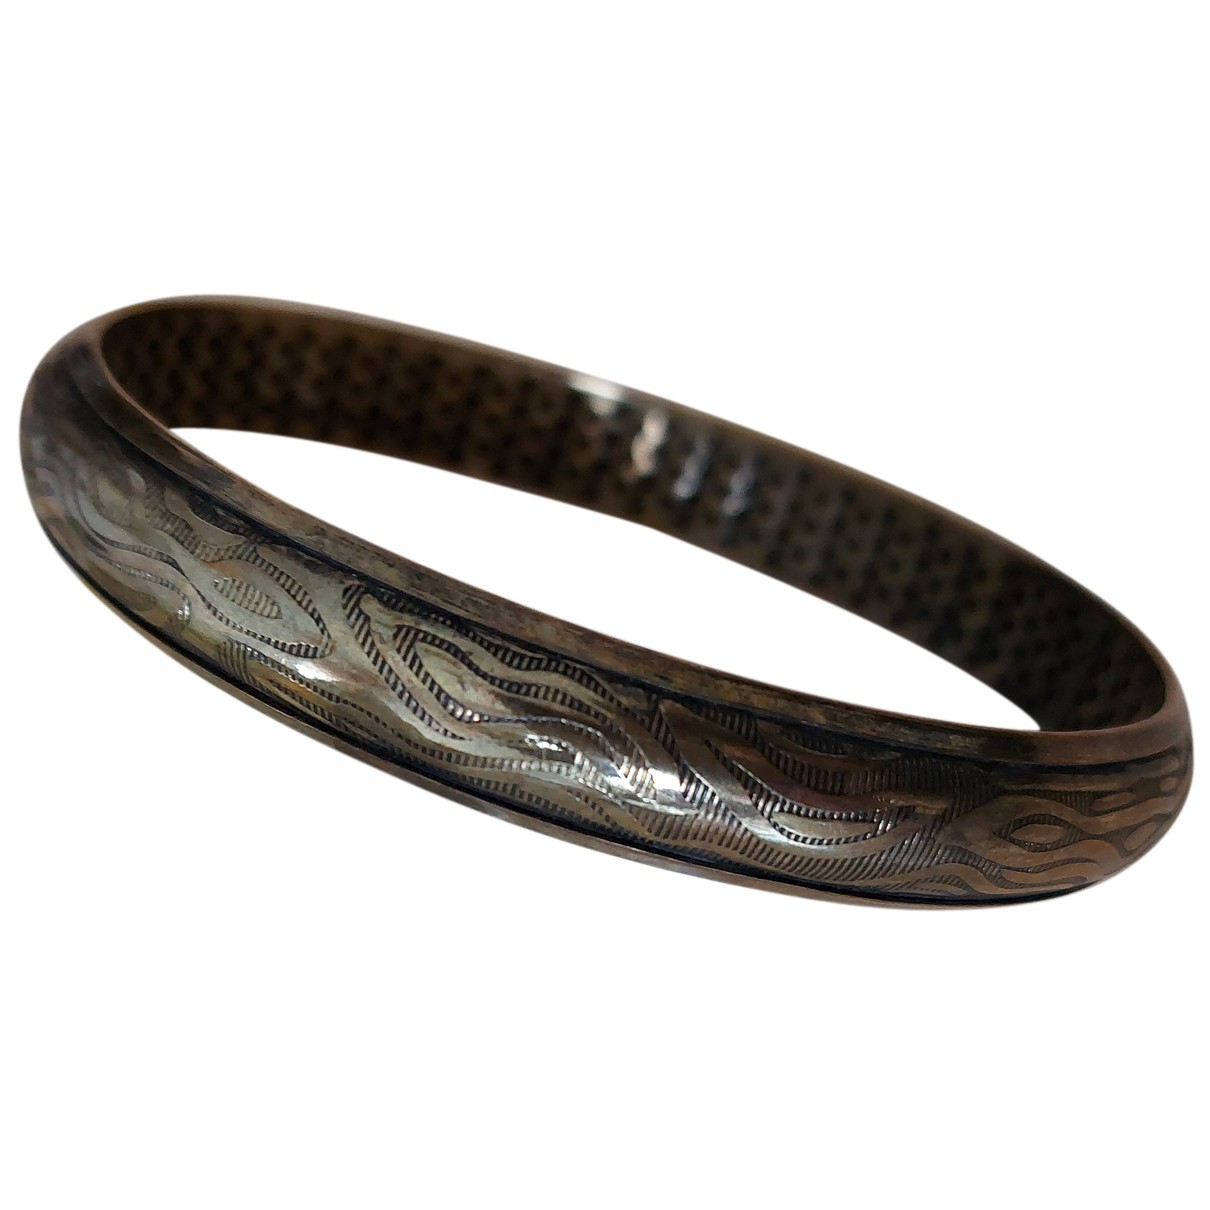 Non Signe / Unsigned Motifs Ethniques Armband in Metall